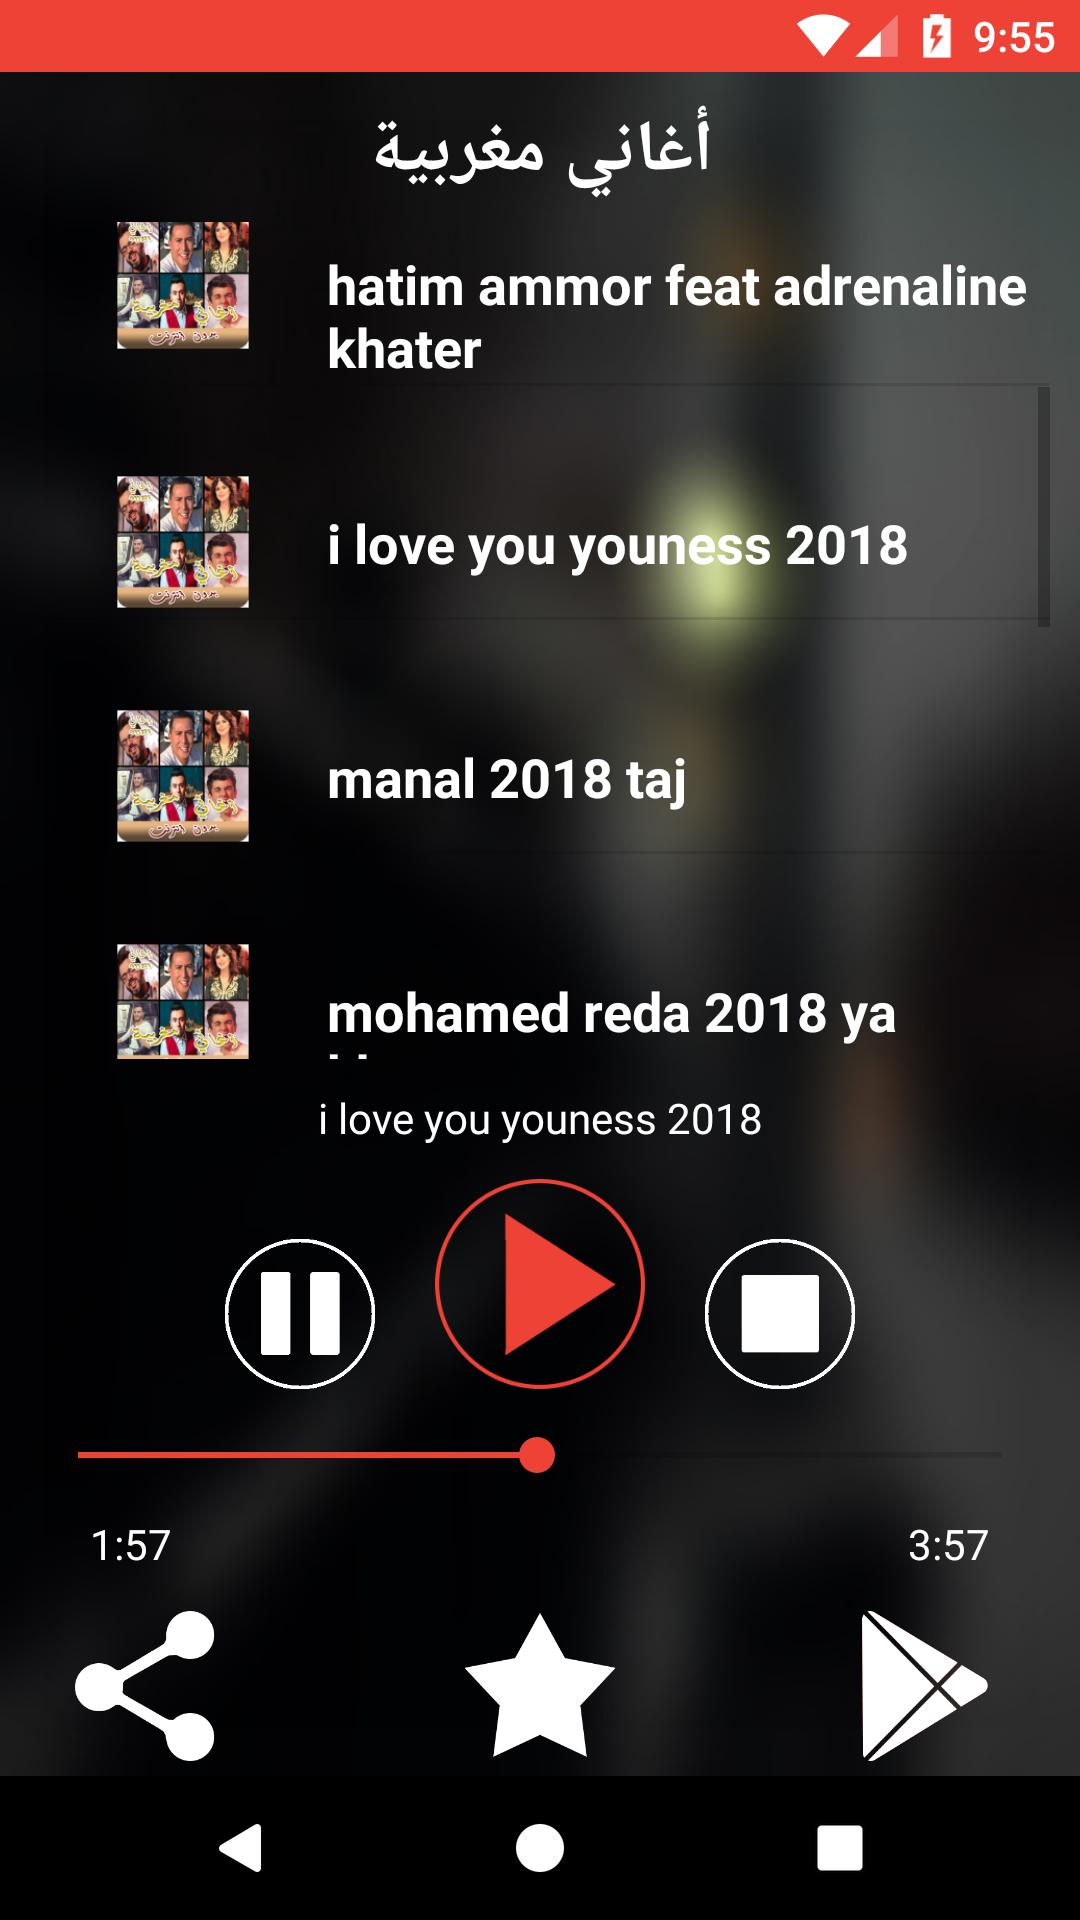 TÉLÉCHARGER MUSIC MOHAMED REDA YA KHSARA